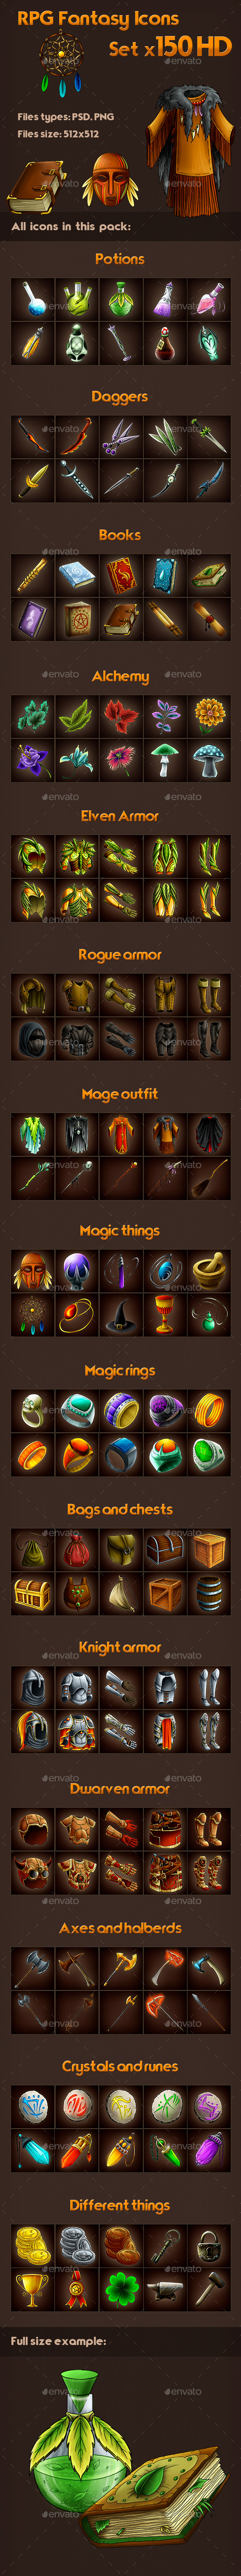 150 RPG Fantasy Icons Set (Weapons, Armor, Clothes) (Miscellaneous)